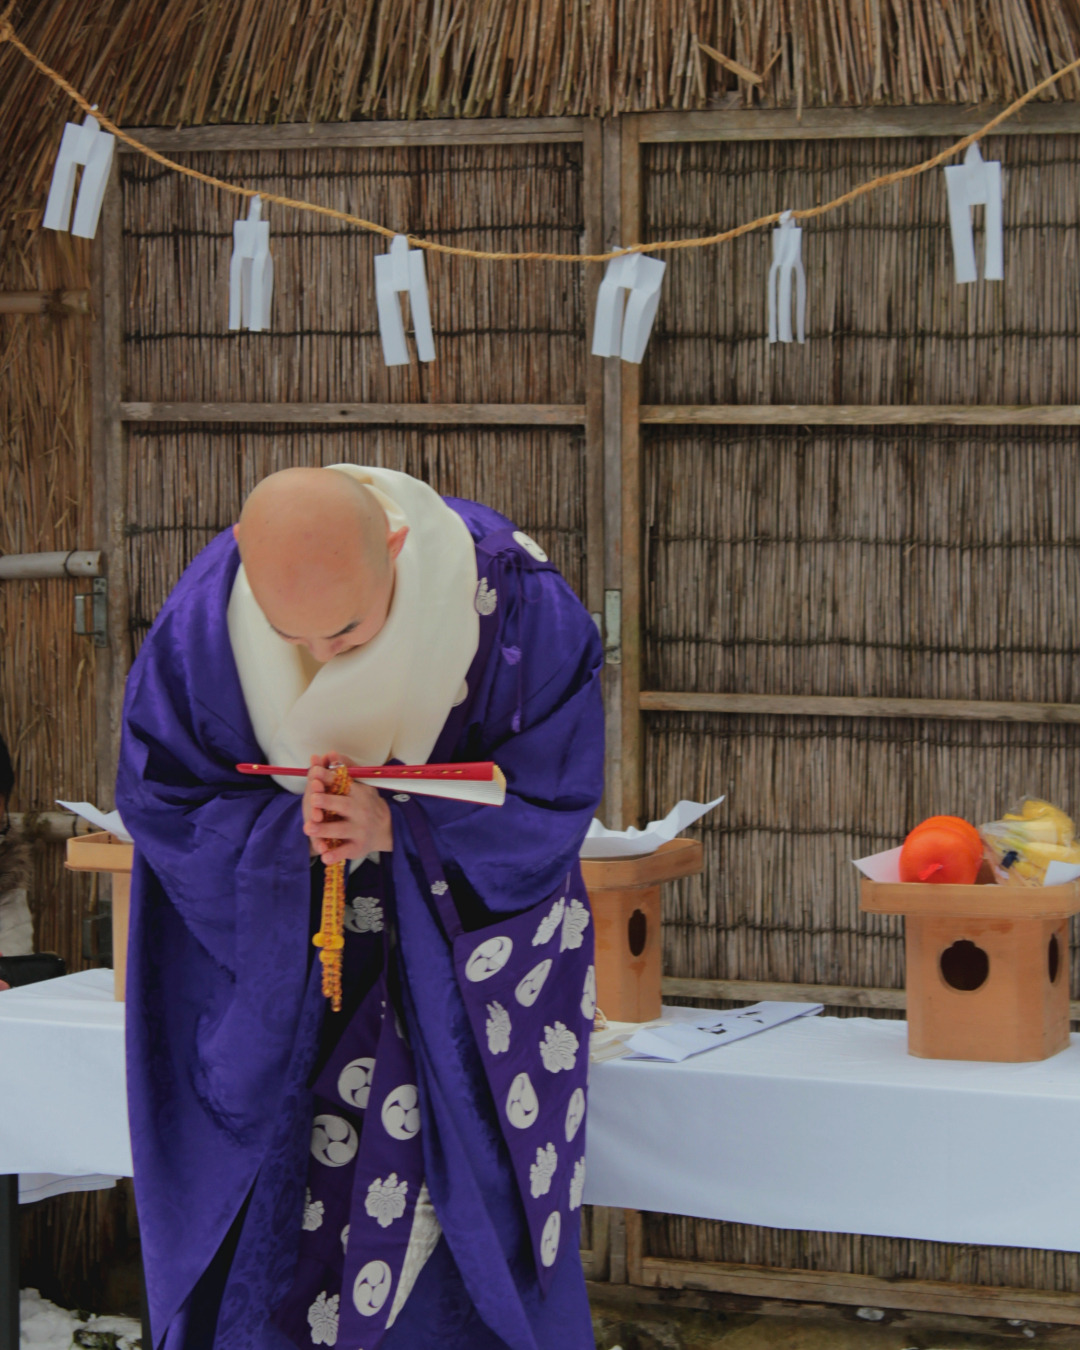 Priests bring offerings to the kami—spirit—of the thatched ice house in Yuwaku Onsen, Kanazawa, Japan